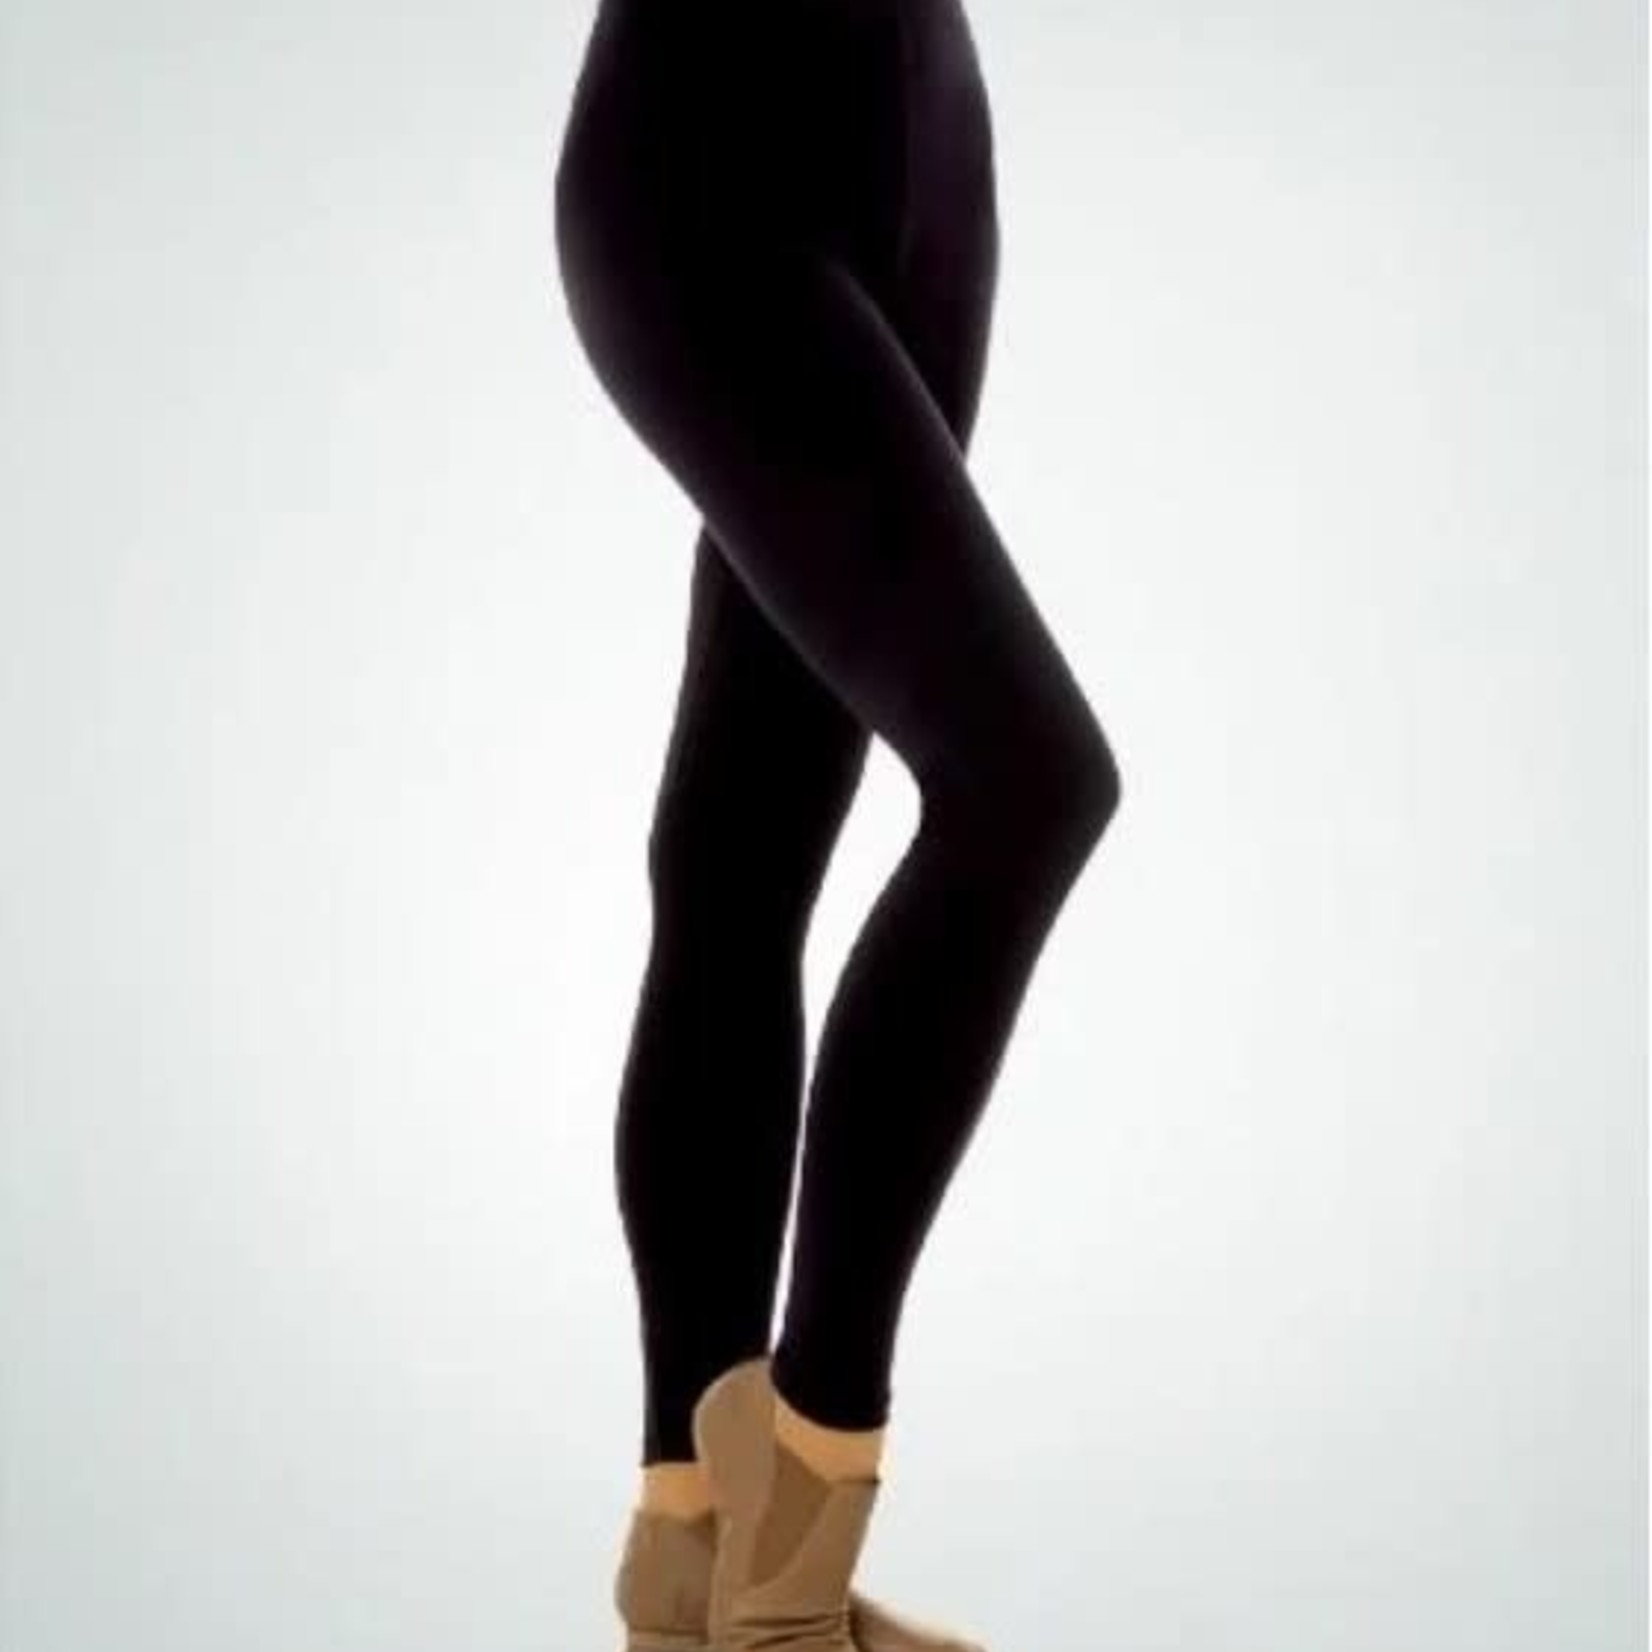 Body Wrappers Body Wrappers 321 Cotton Leggings